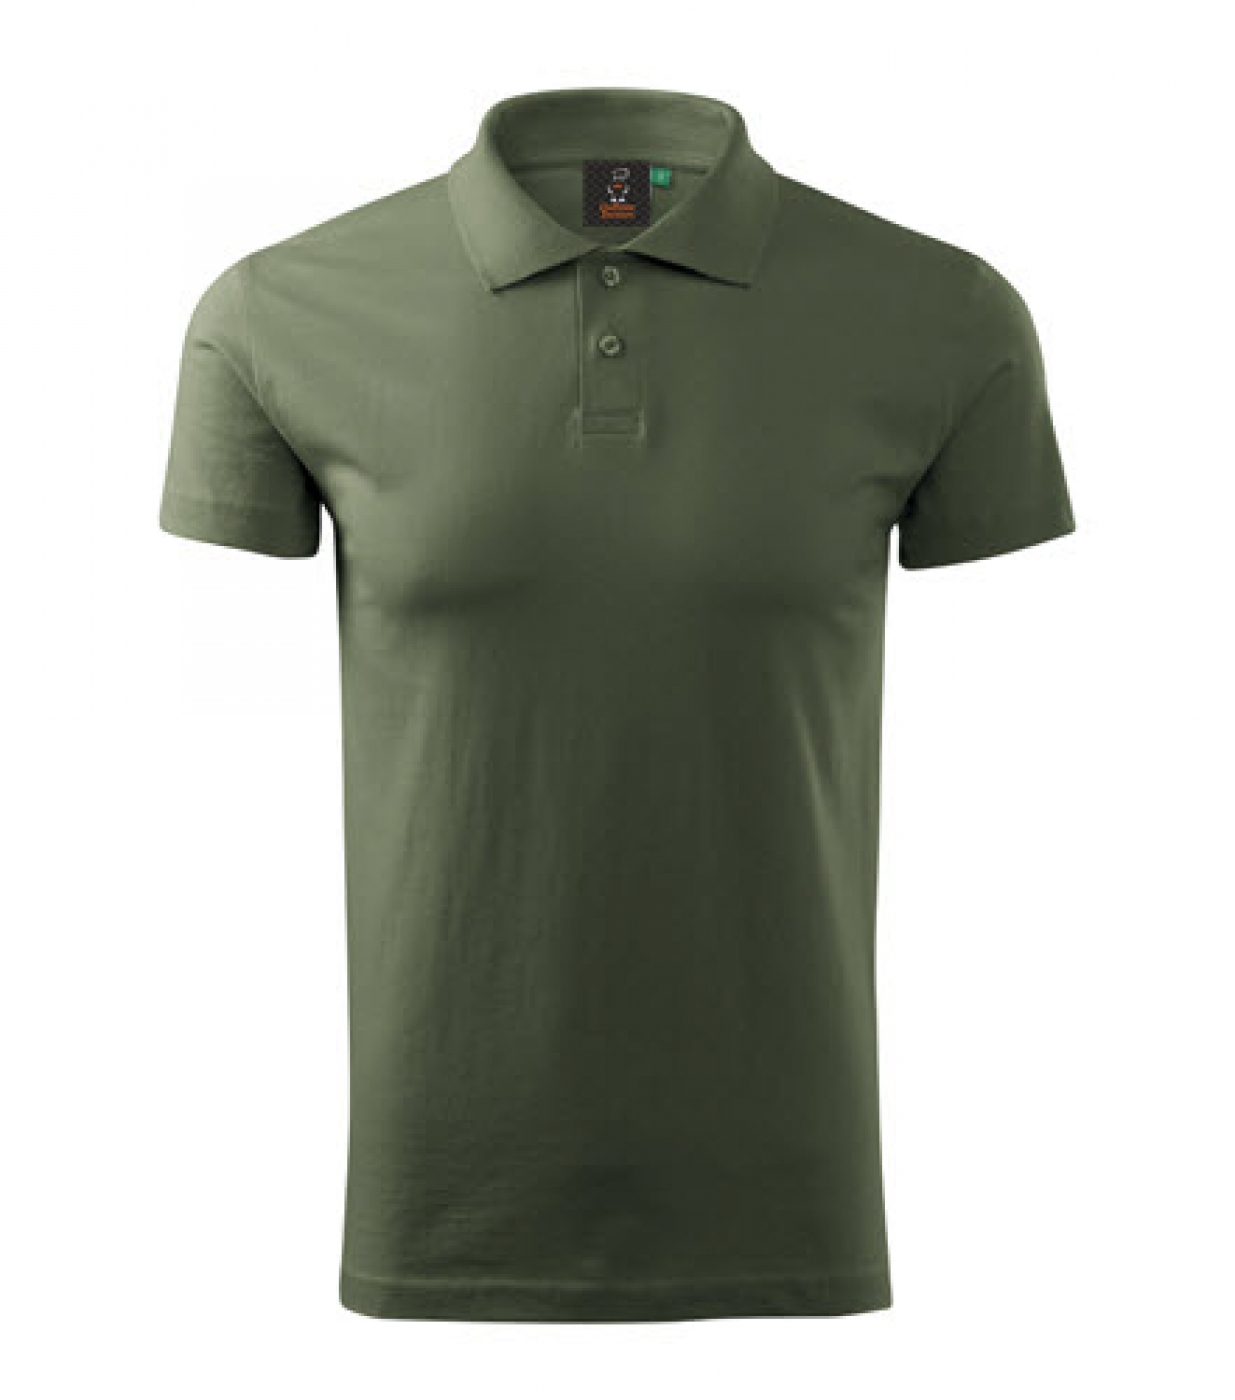 Tricou camuflaj, din bumbac, model polo Single Jersey, de barbat